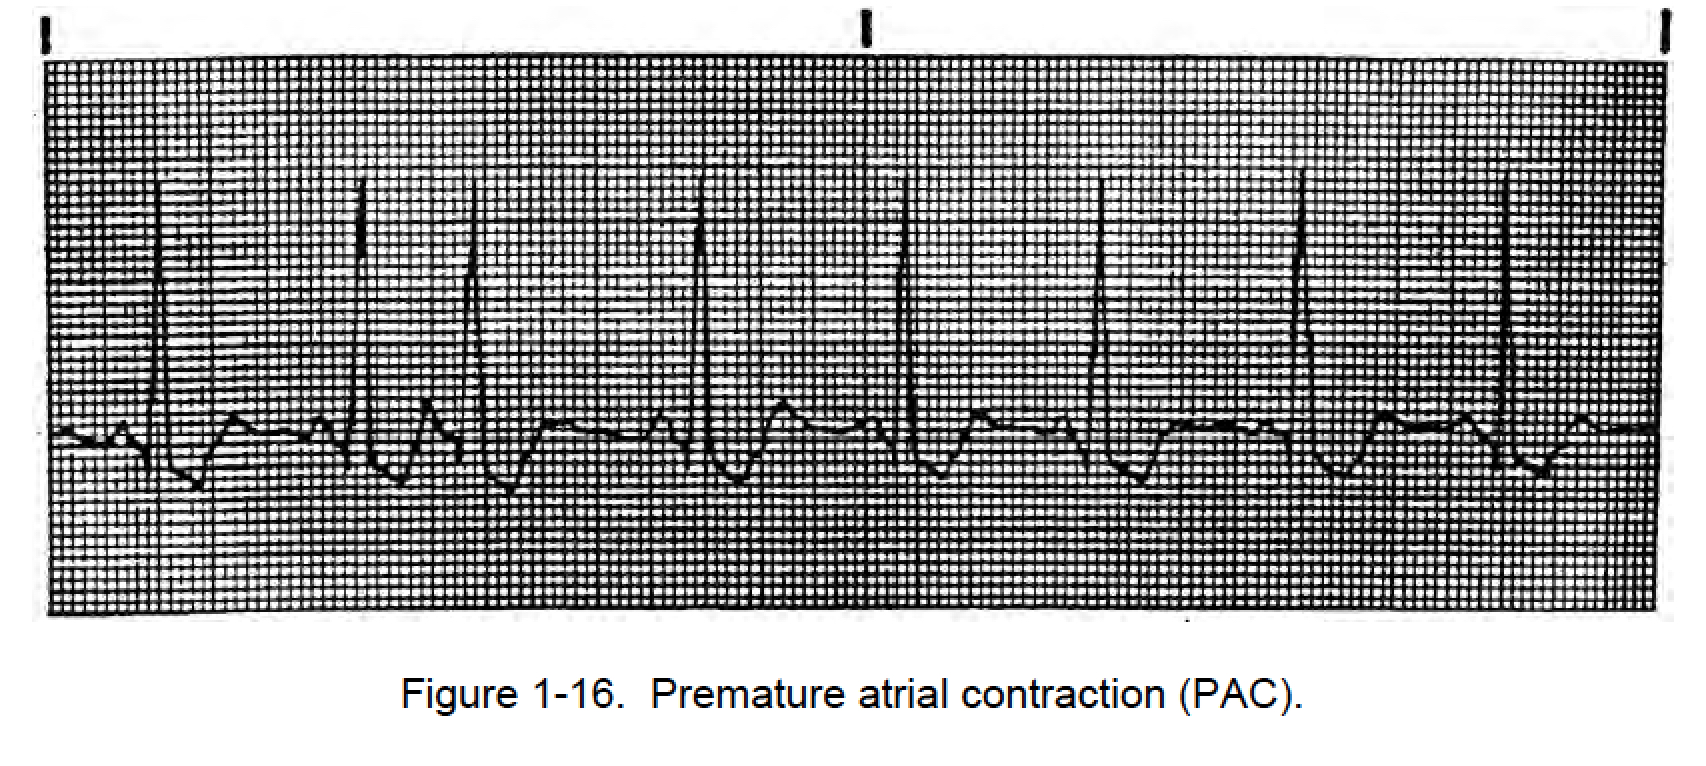 how to understand premature atrial contraction on ecg